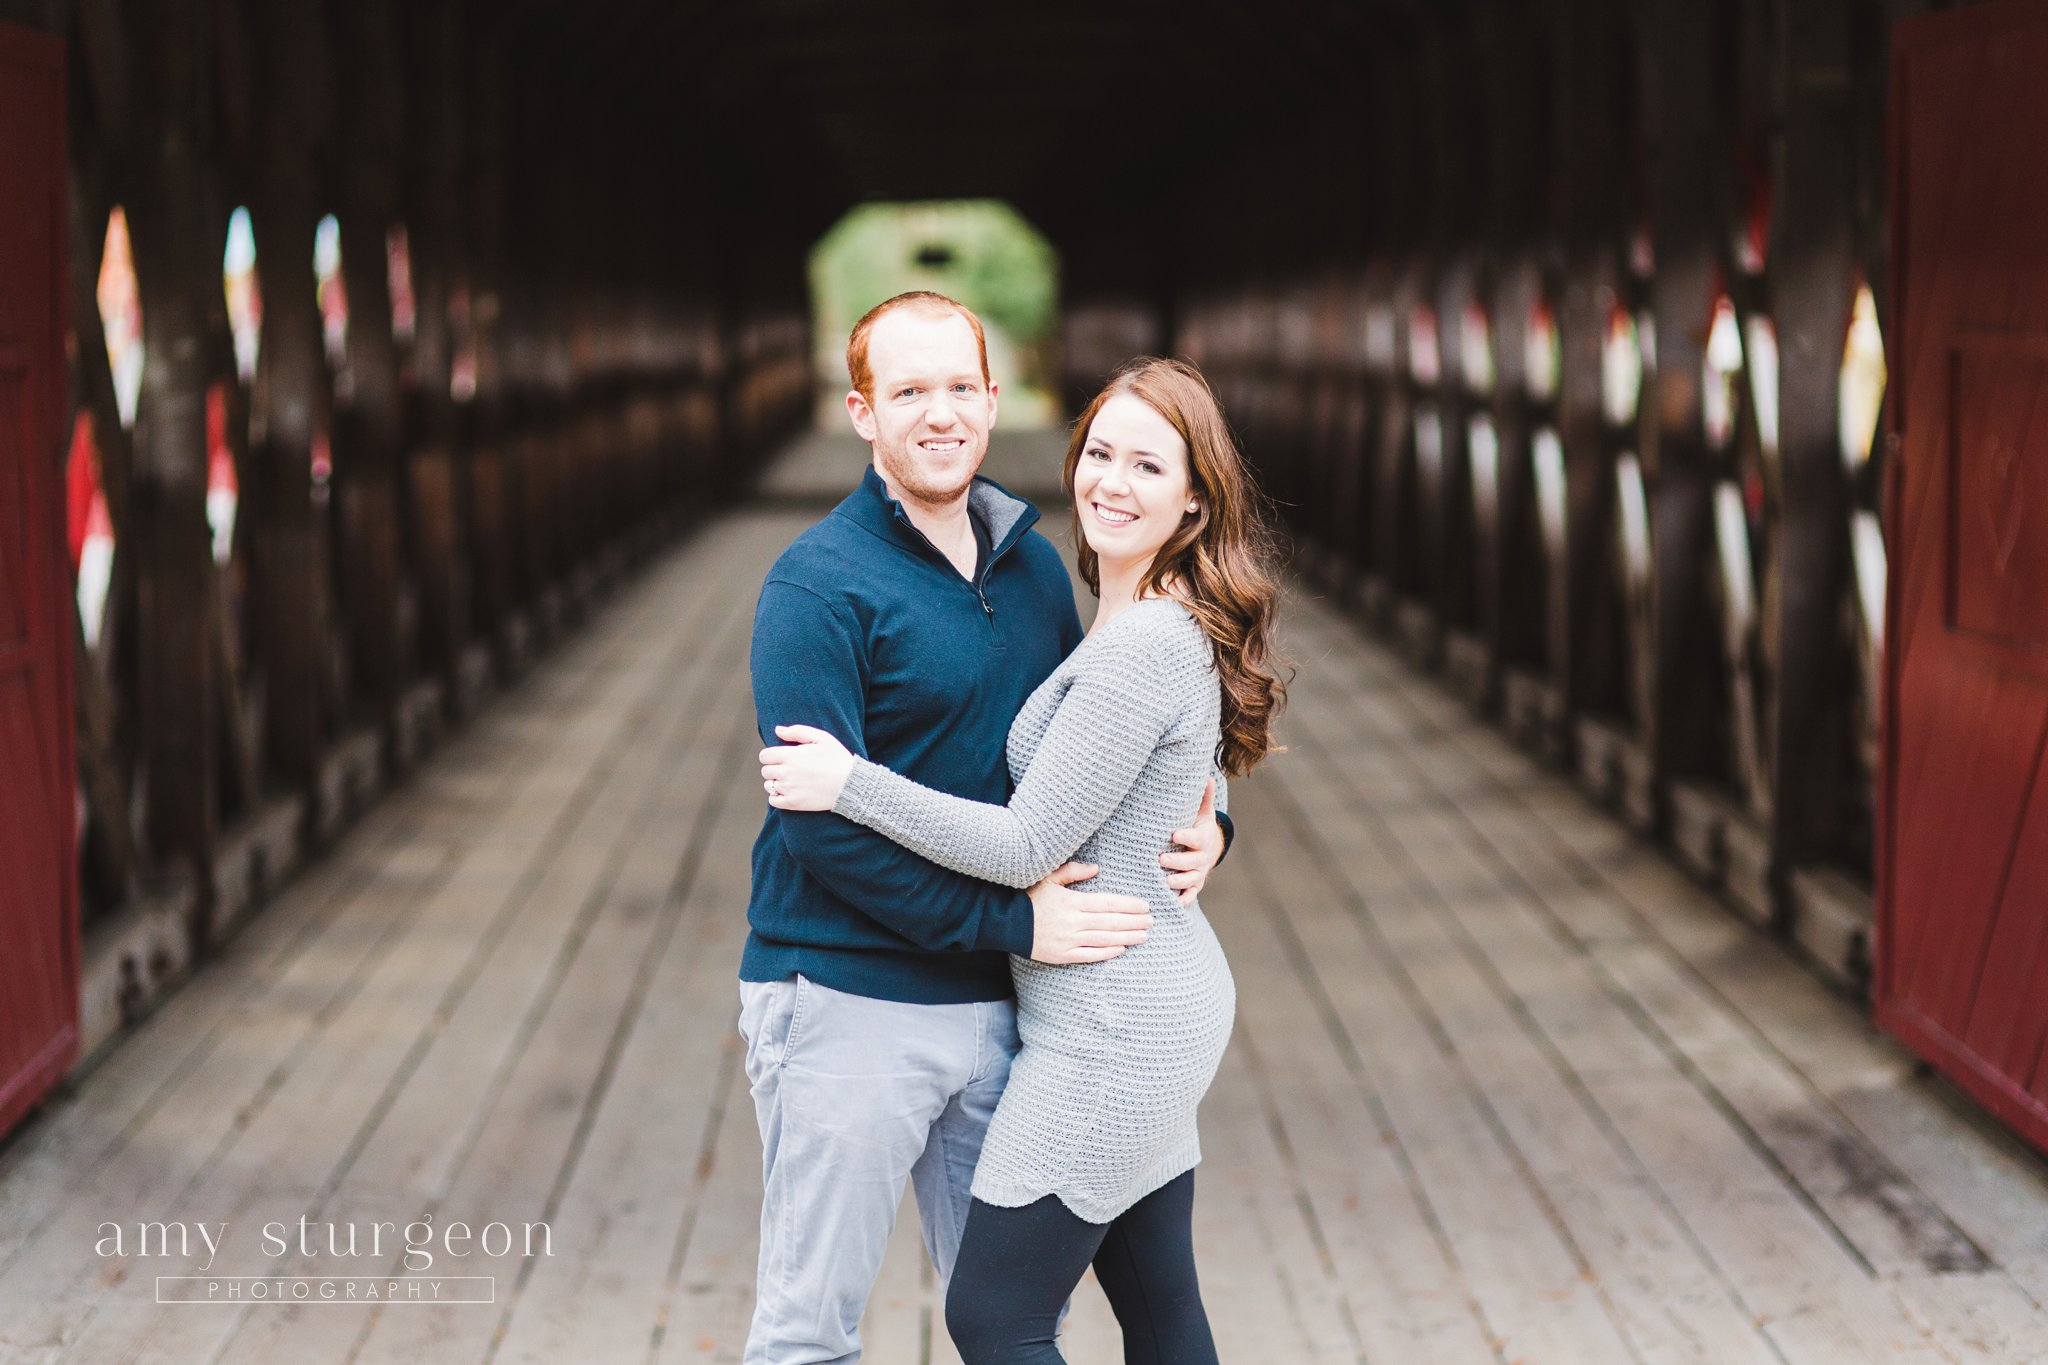 The bride and groom at the covered bridge for their Fall Wakefield Engagement Session